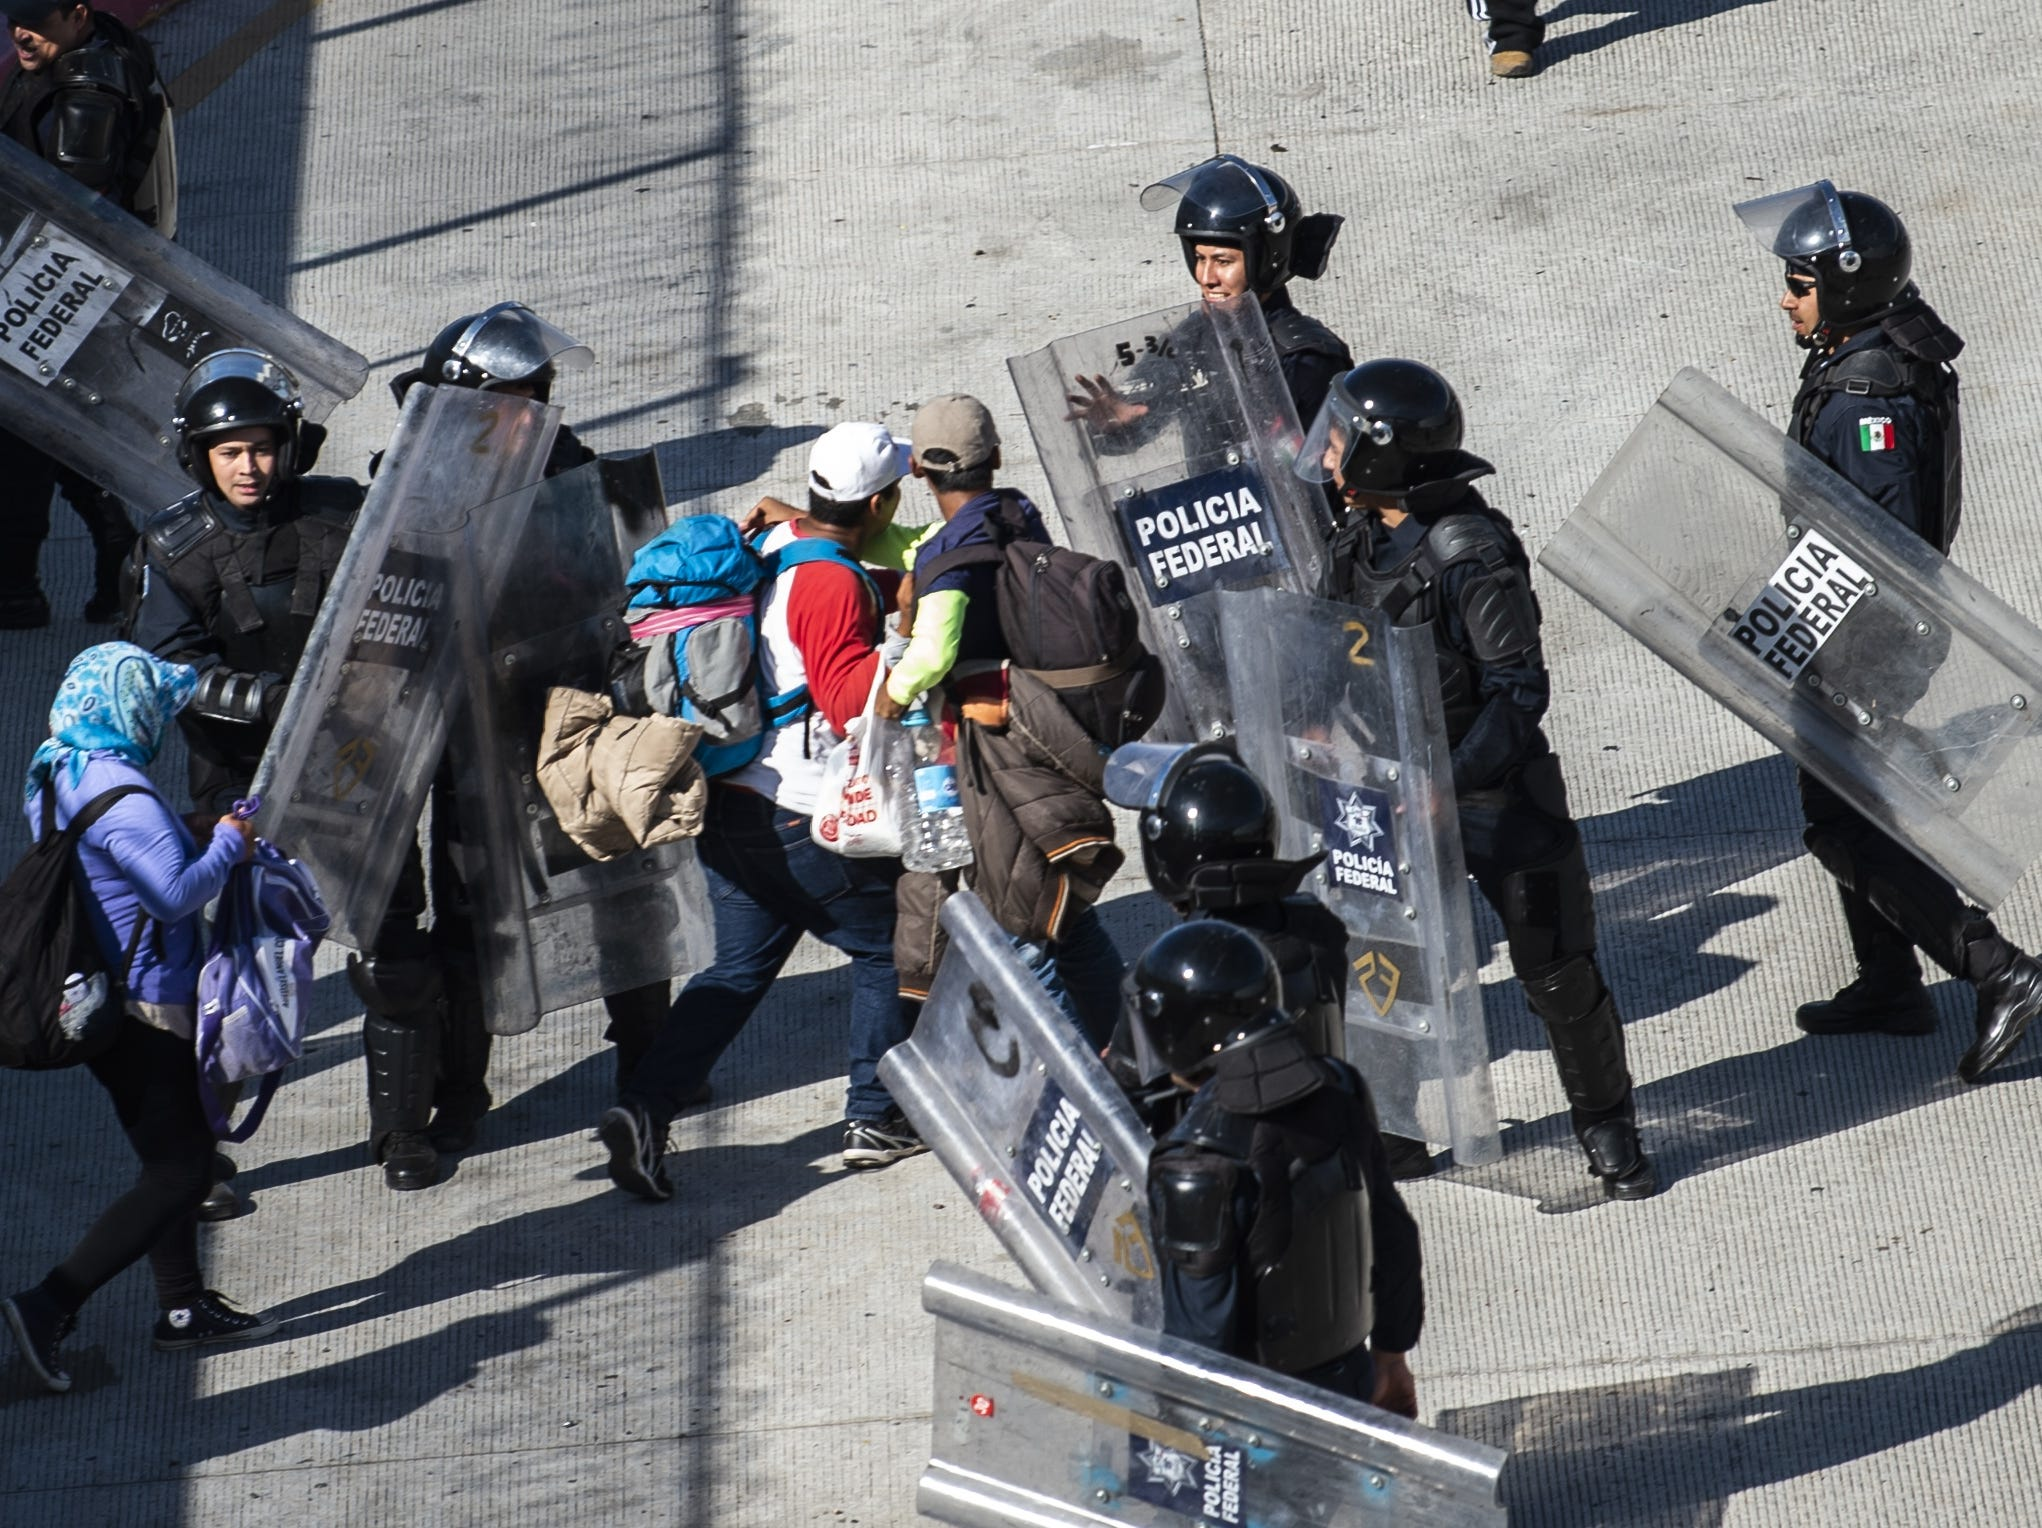 Central American migrants struggle with Mexican police forces as they reach the El Chaparral border crossing, in Tijuana, Baja California State, Mexico, on November 25, 2018.